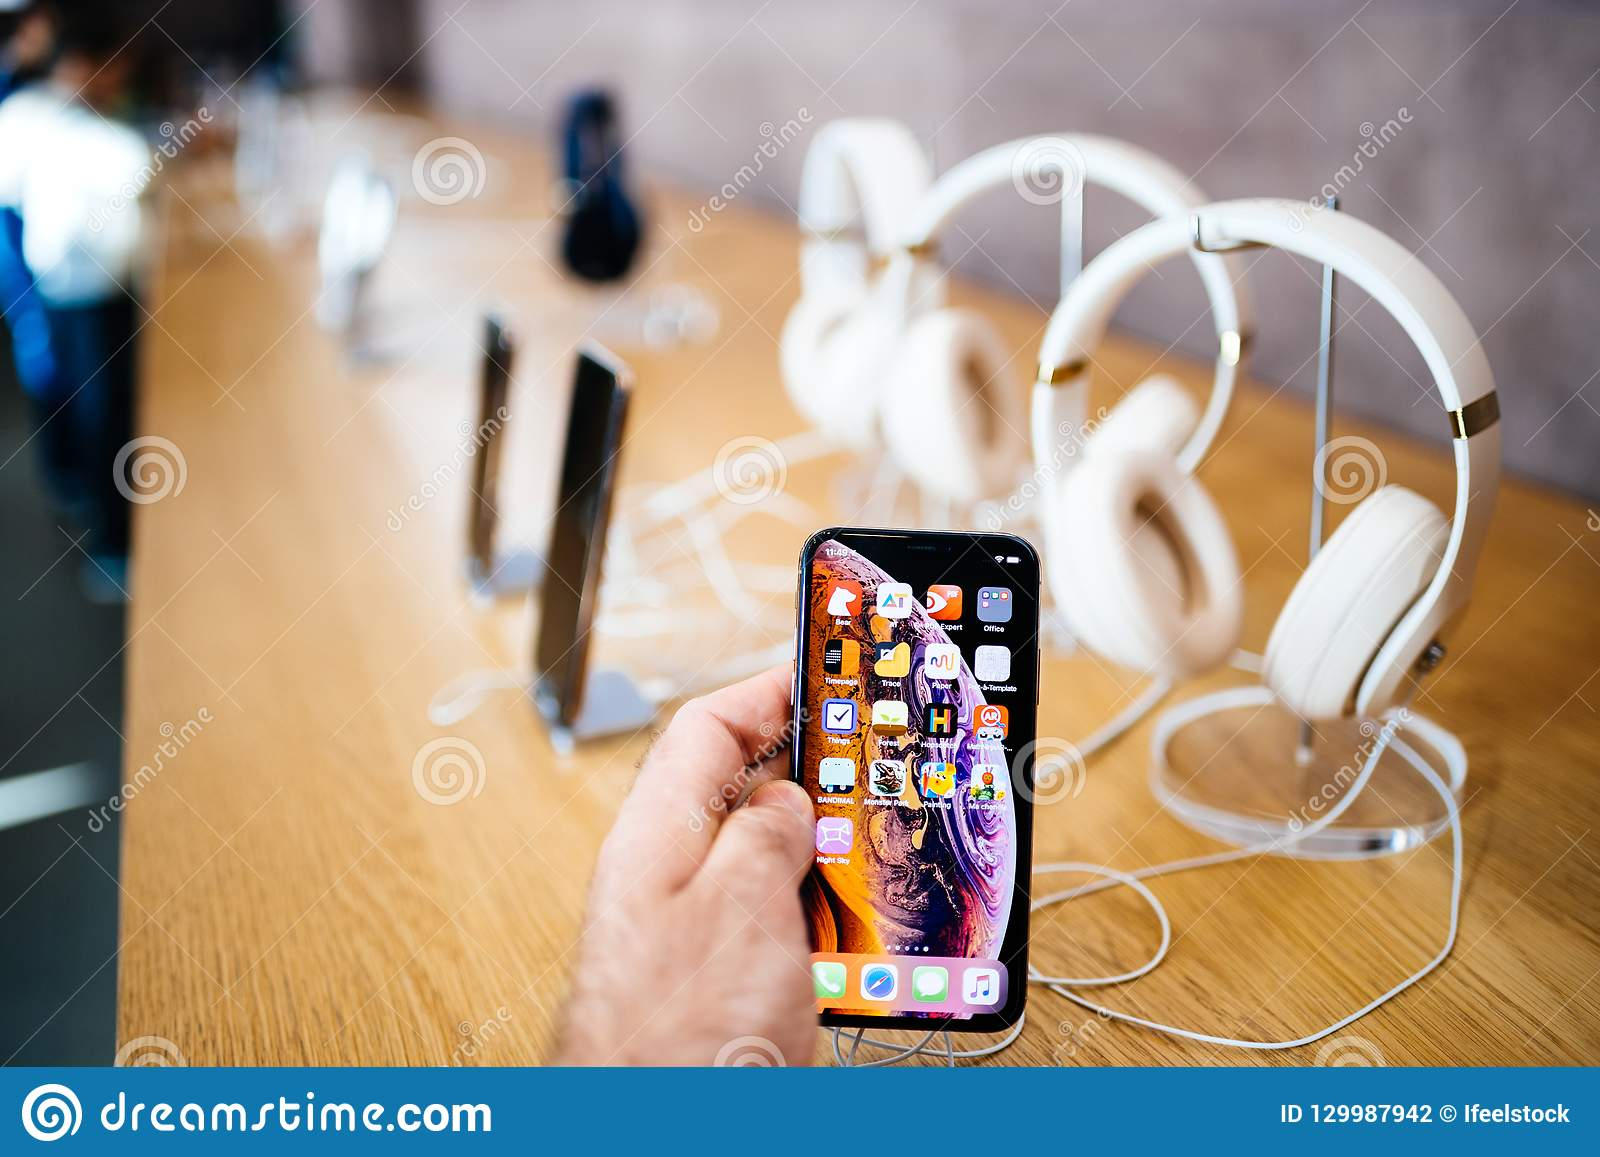 9e5af78cfe6 PARIS, FRANCE - OCT 26, 2018: Man hand holding new iphone Xs Xr Max with  Apple Music app and multiple wireless bluetooth headphones Beats By Dr Dre  Studio 3